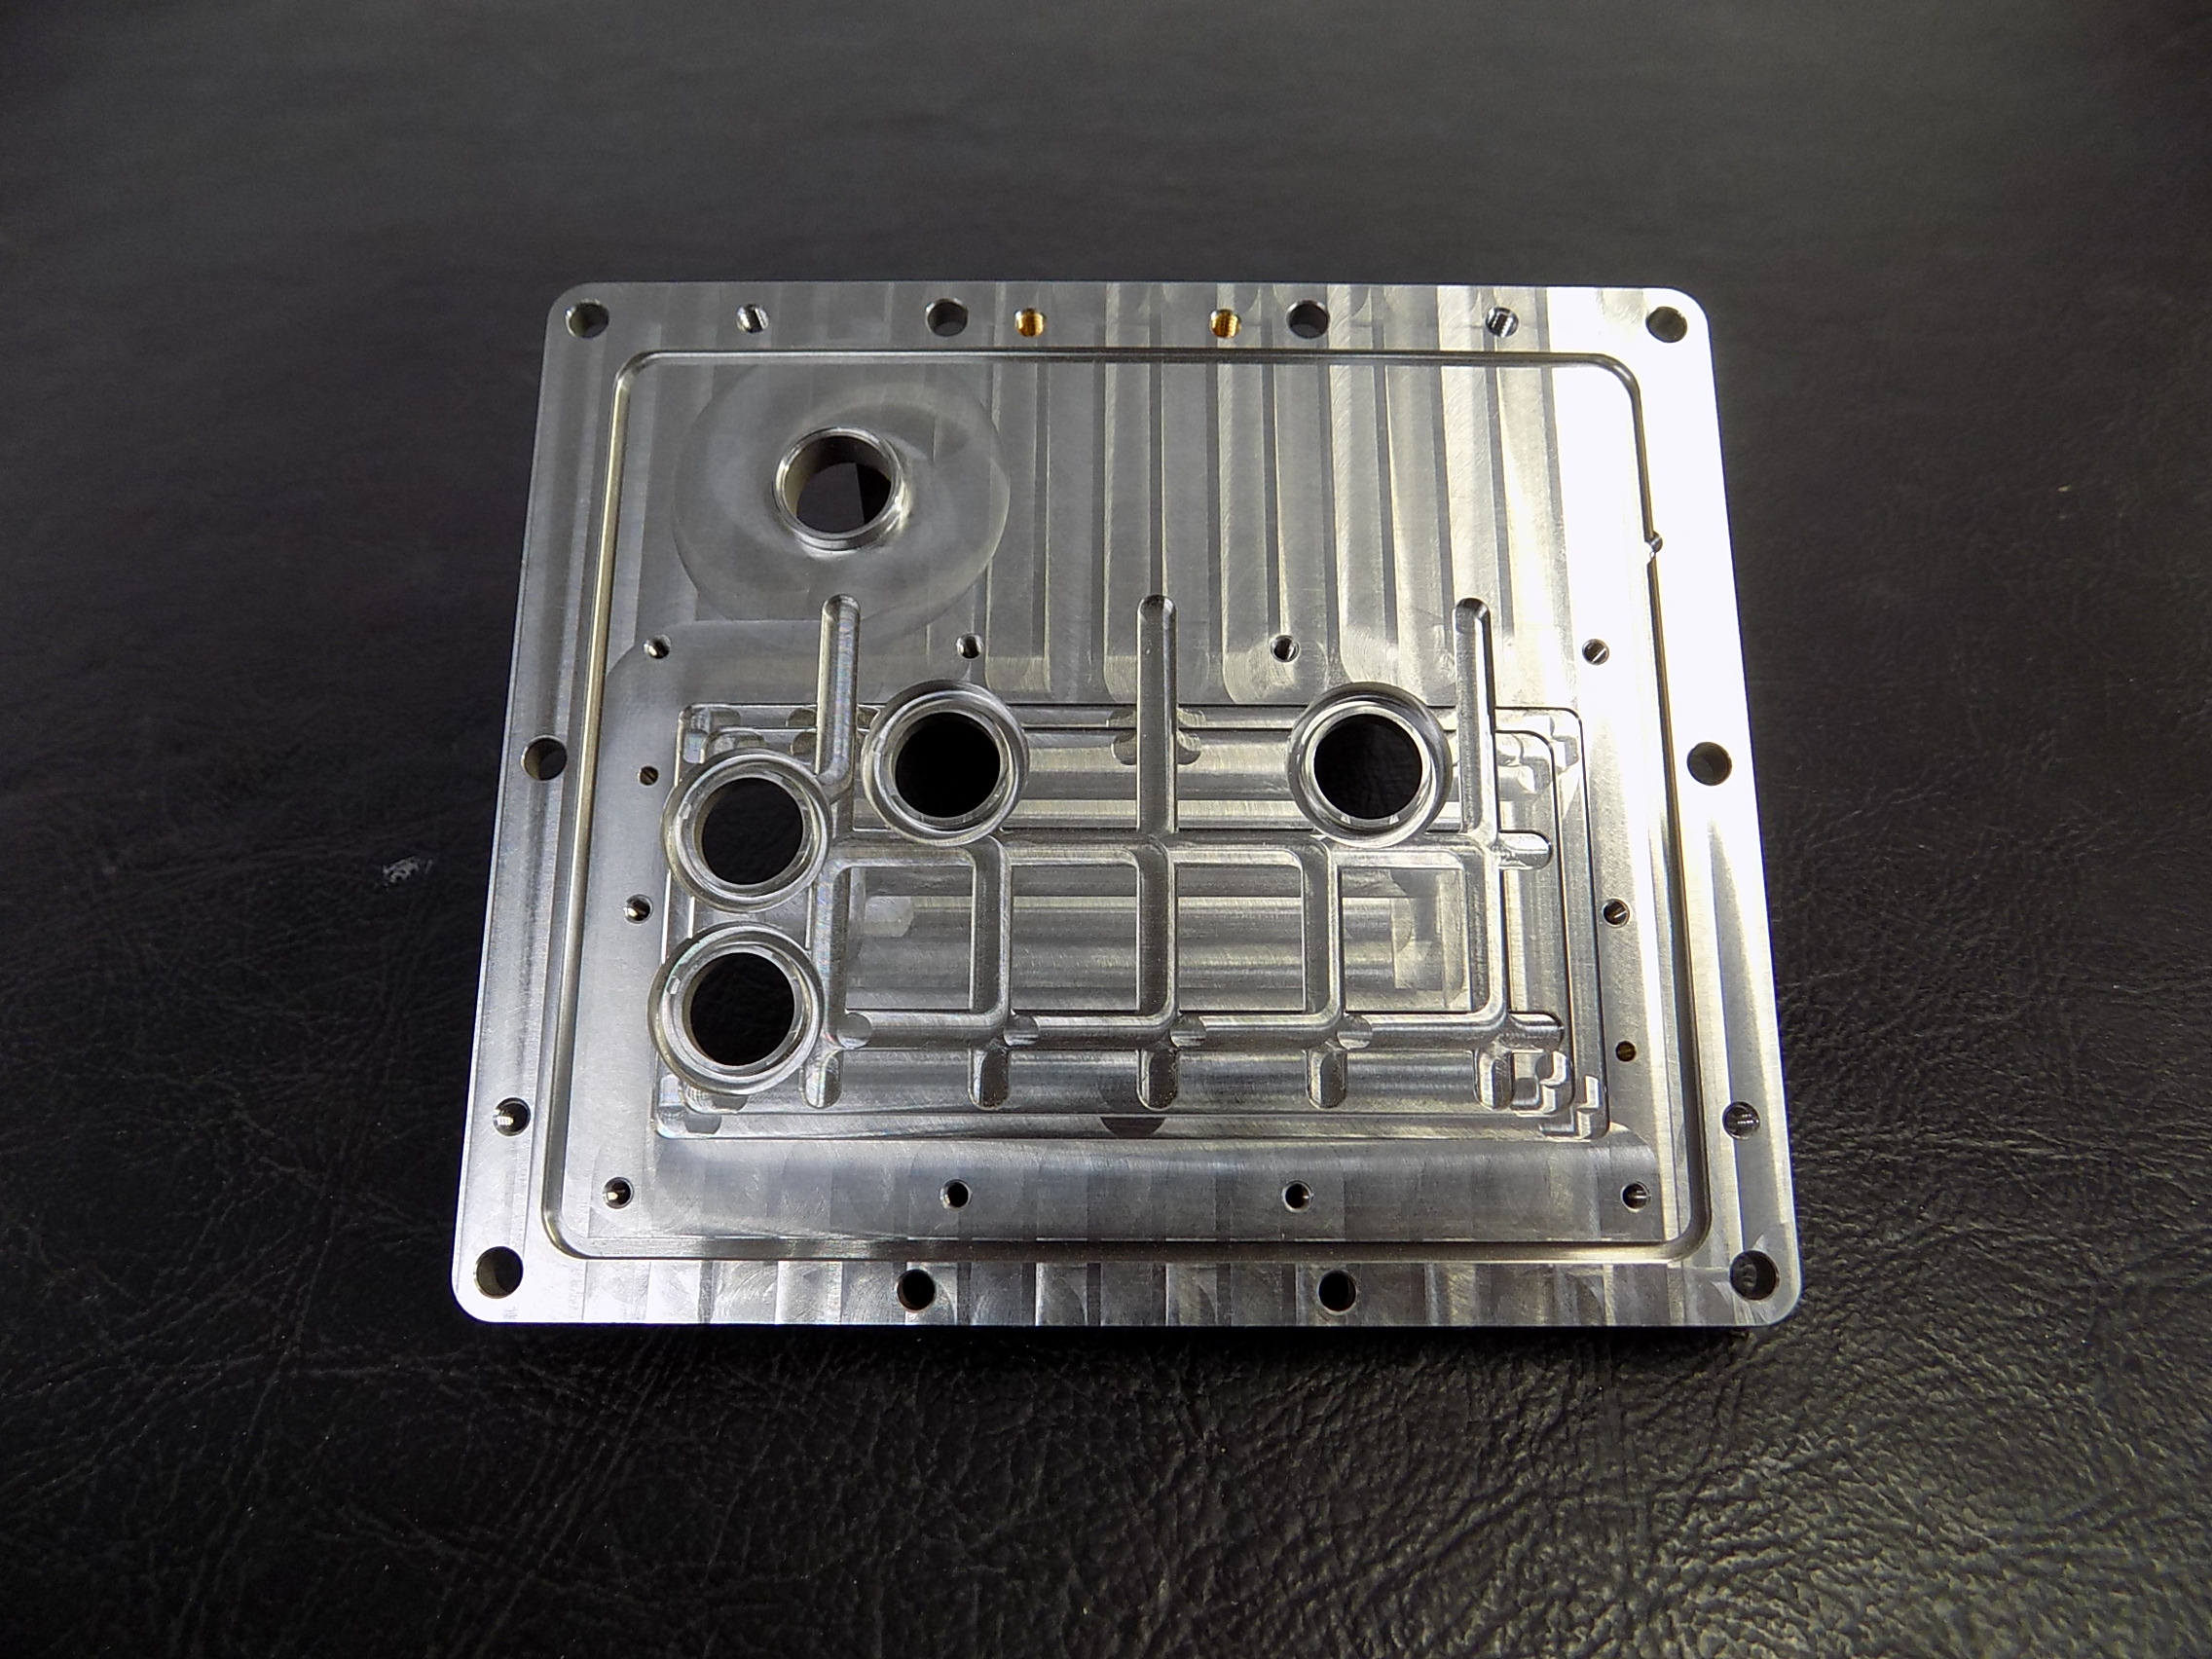 Thin SST backplate